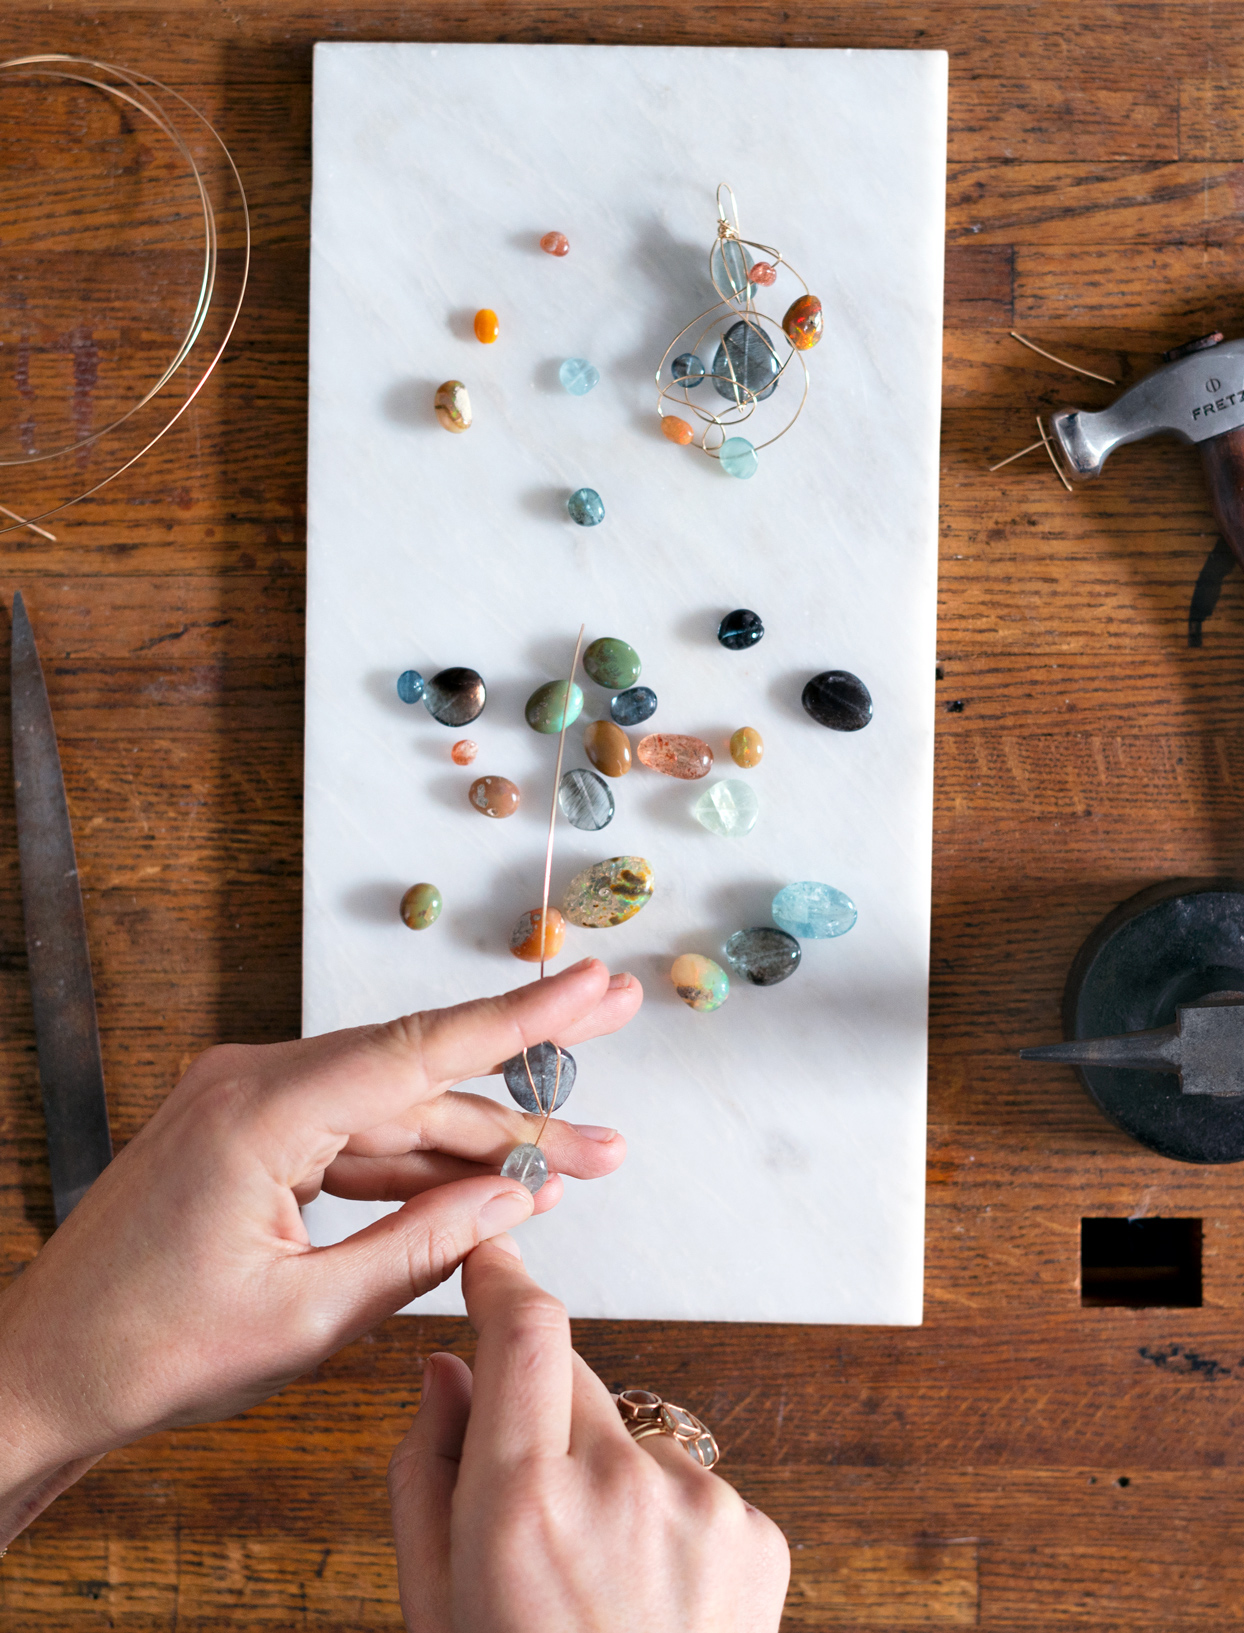 mary macgill stringing beaded gems on wire